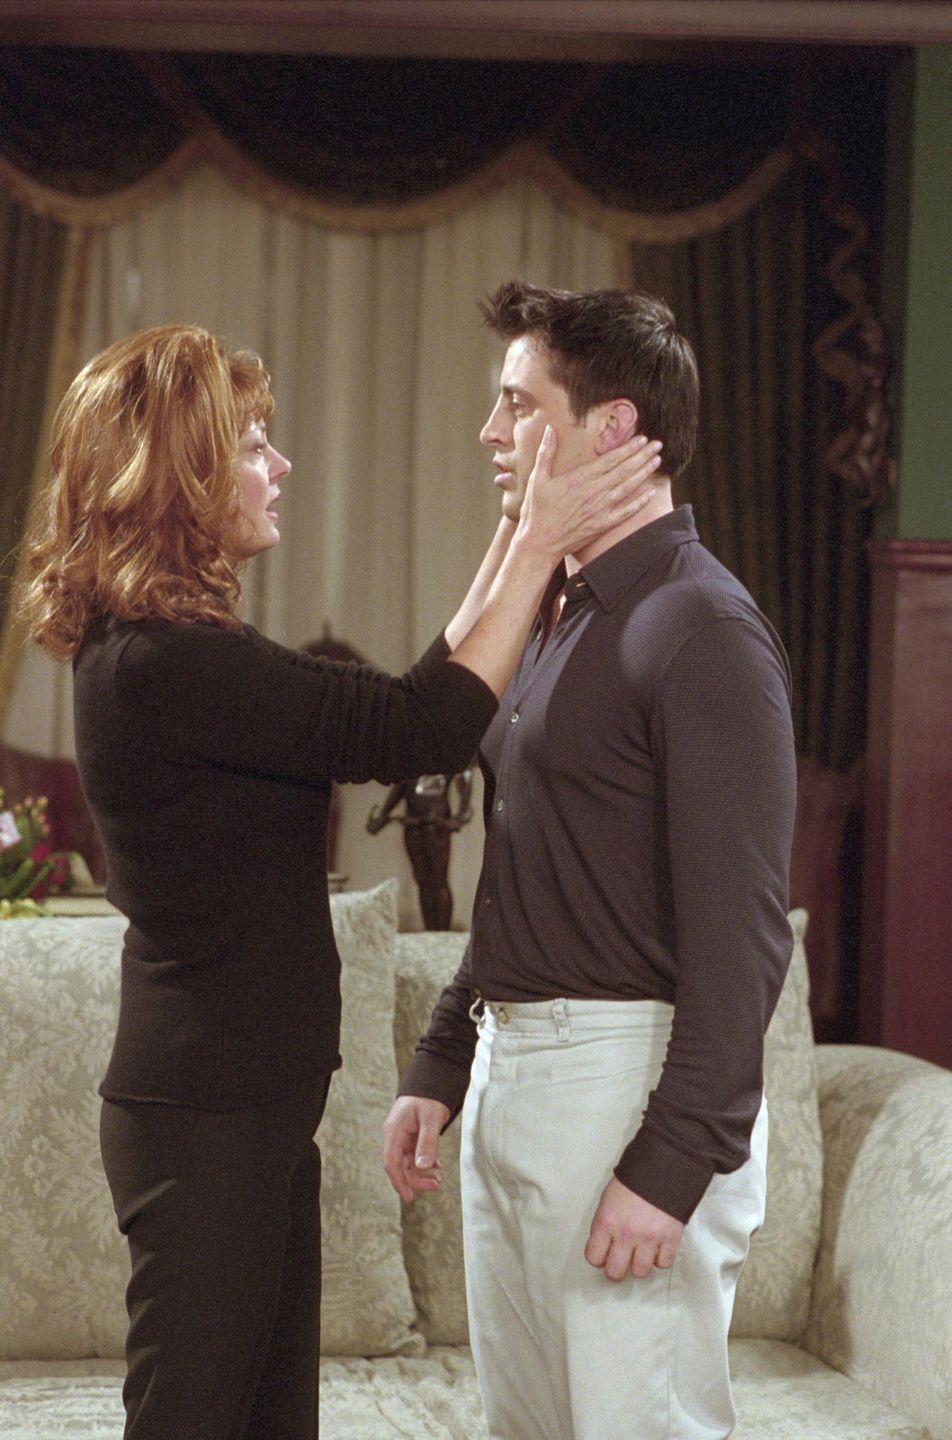 <p>Susan Sarandon served up a dramatic performance as soap star Jessica Lockhart in season 7 of the show alongside Joey.</p>